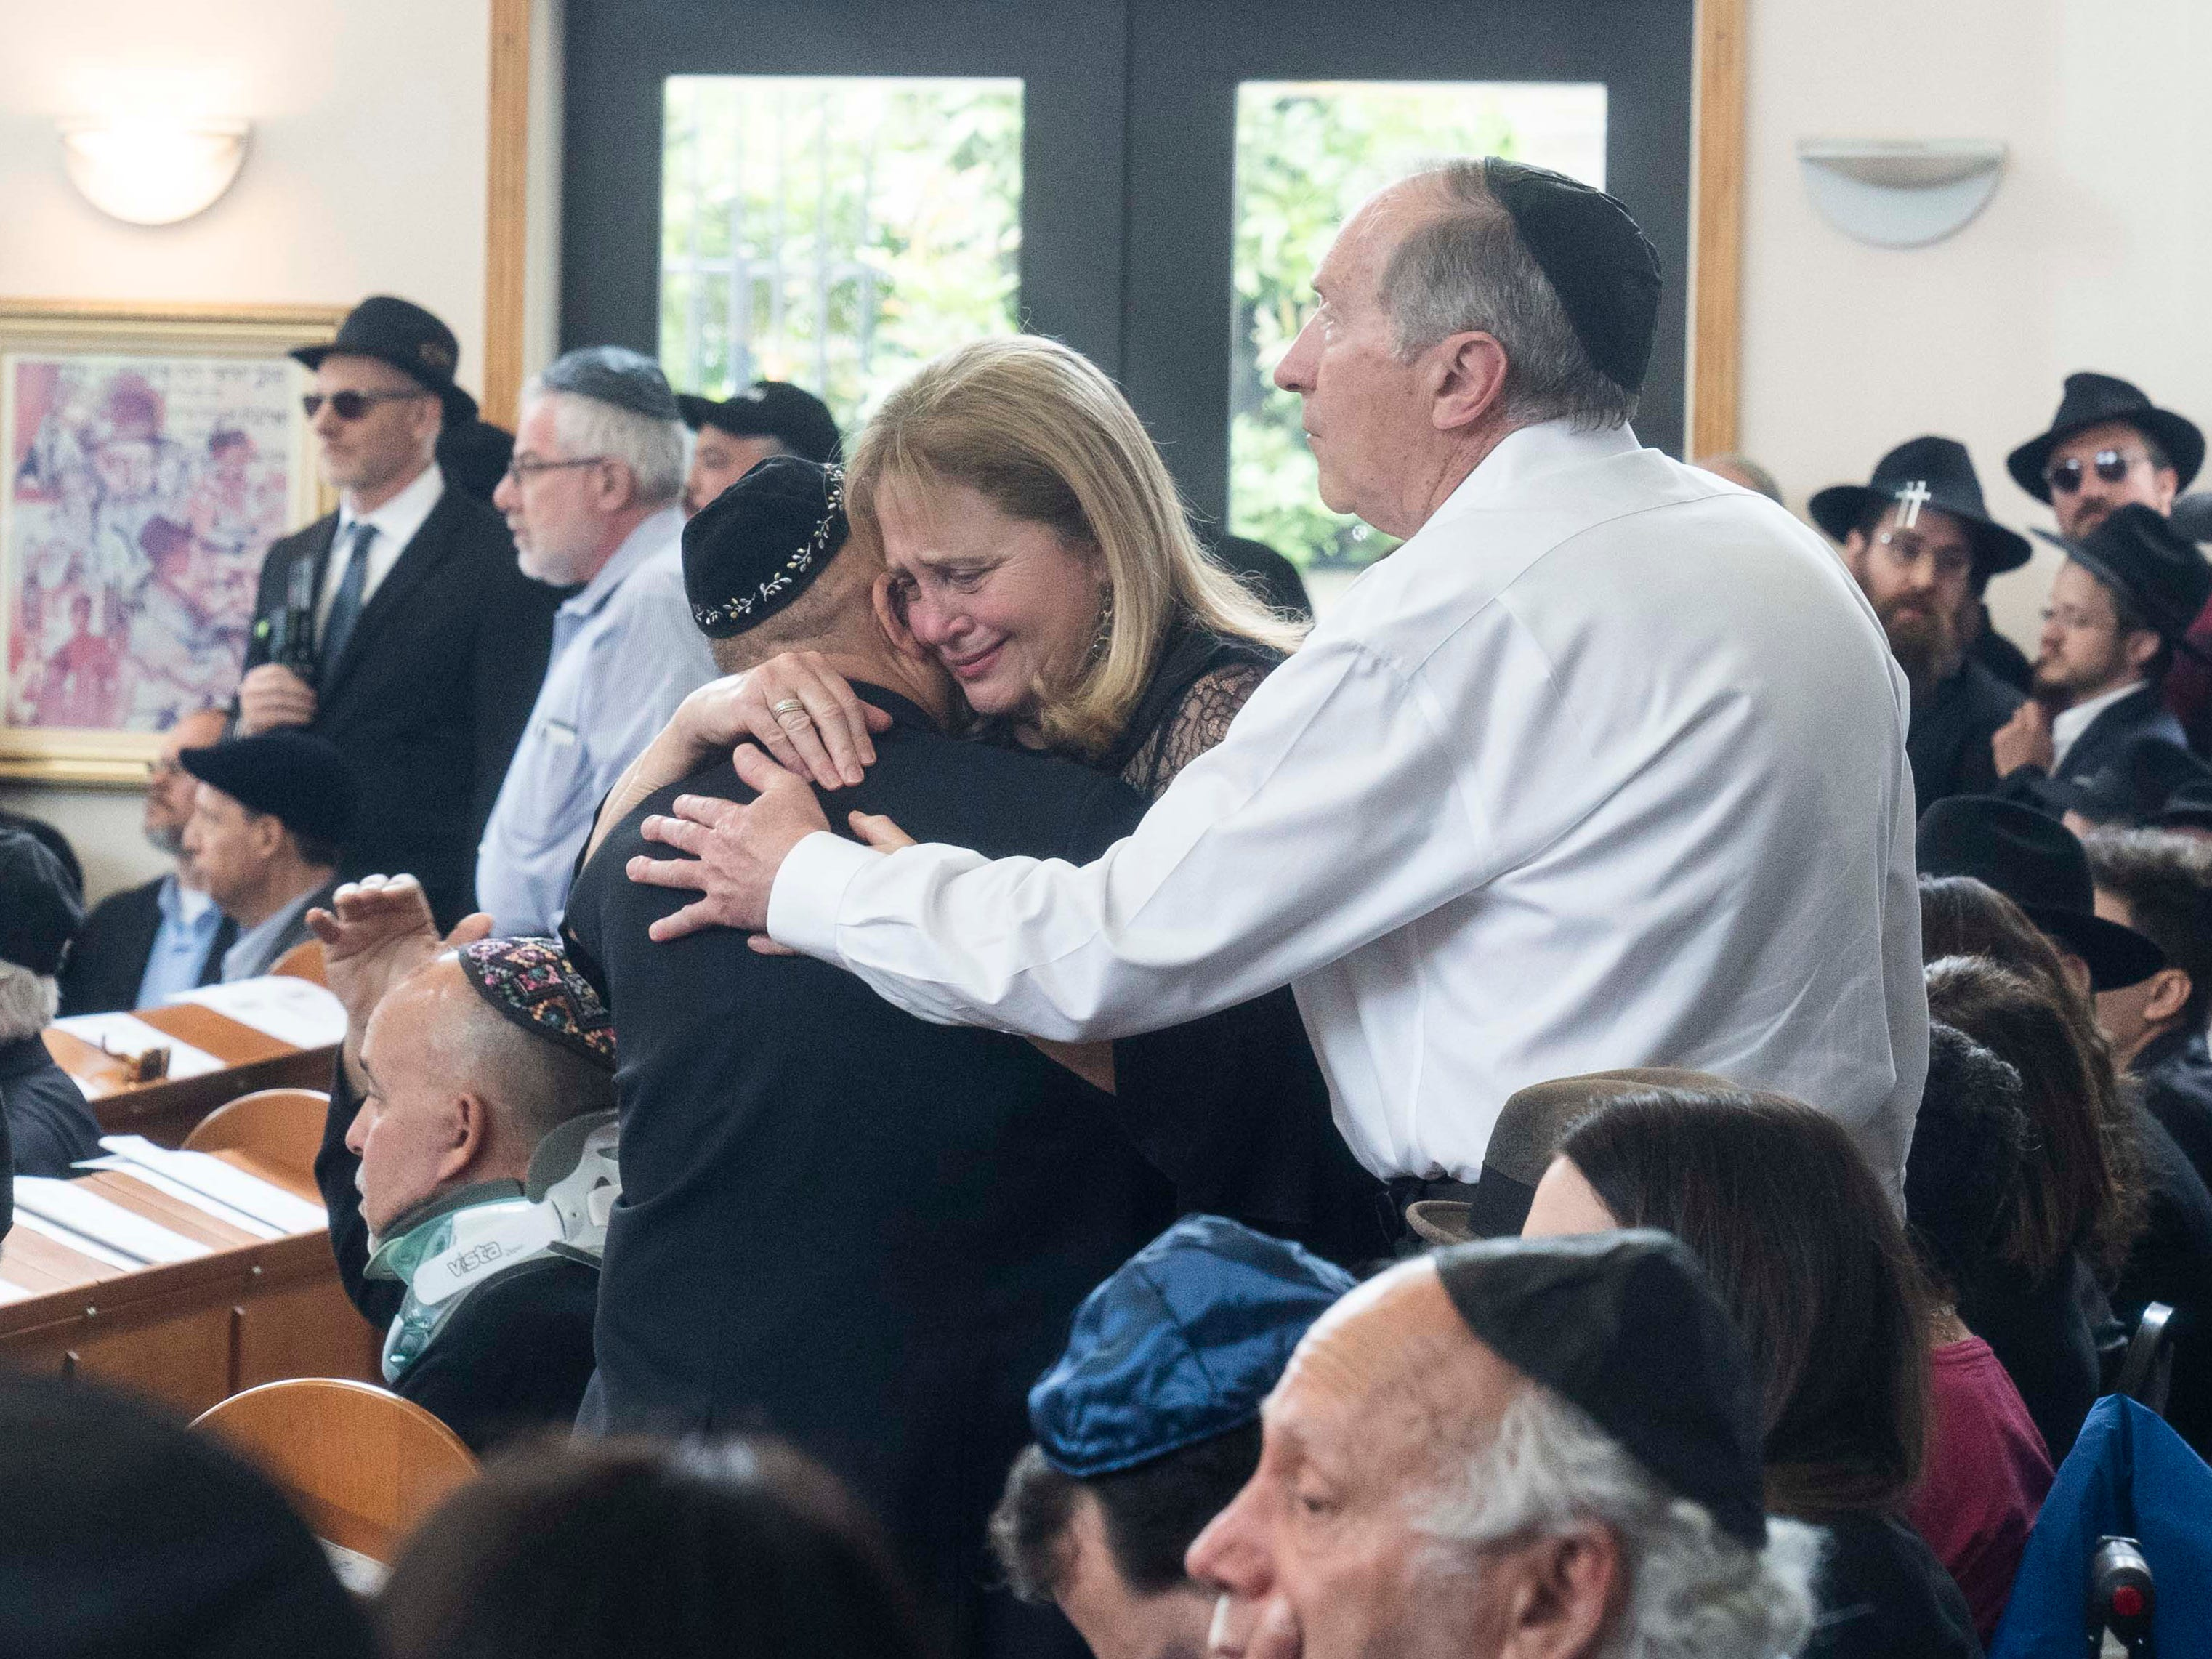 People attend a funeral service on April 29, 2019, for Lori Gilbert-Kaye, who died during the shooting at Chabad of Poway Synagogue in Poway, Calif.